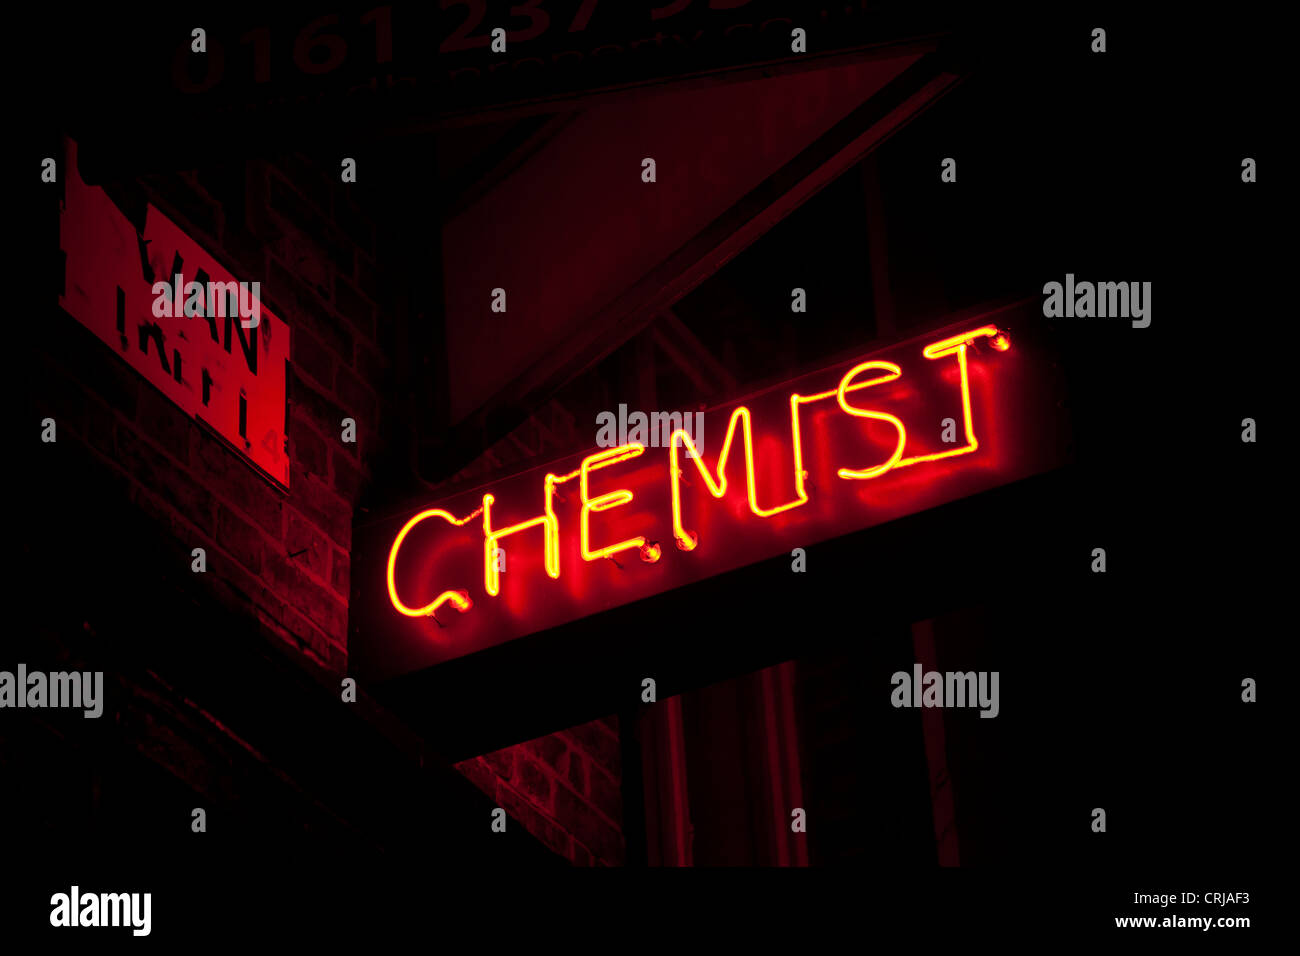 Neon Chemist sign - Stock Image